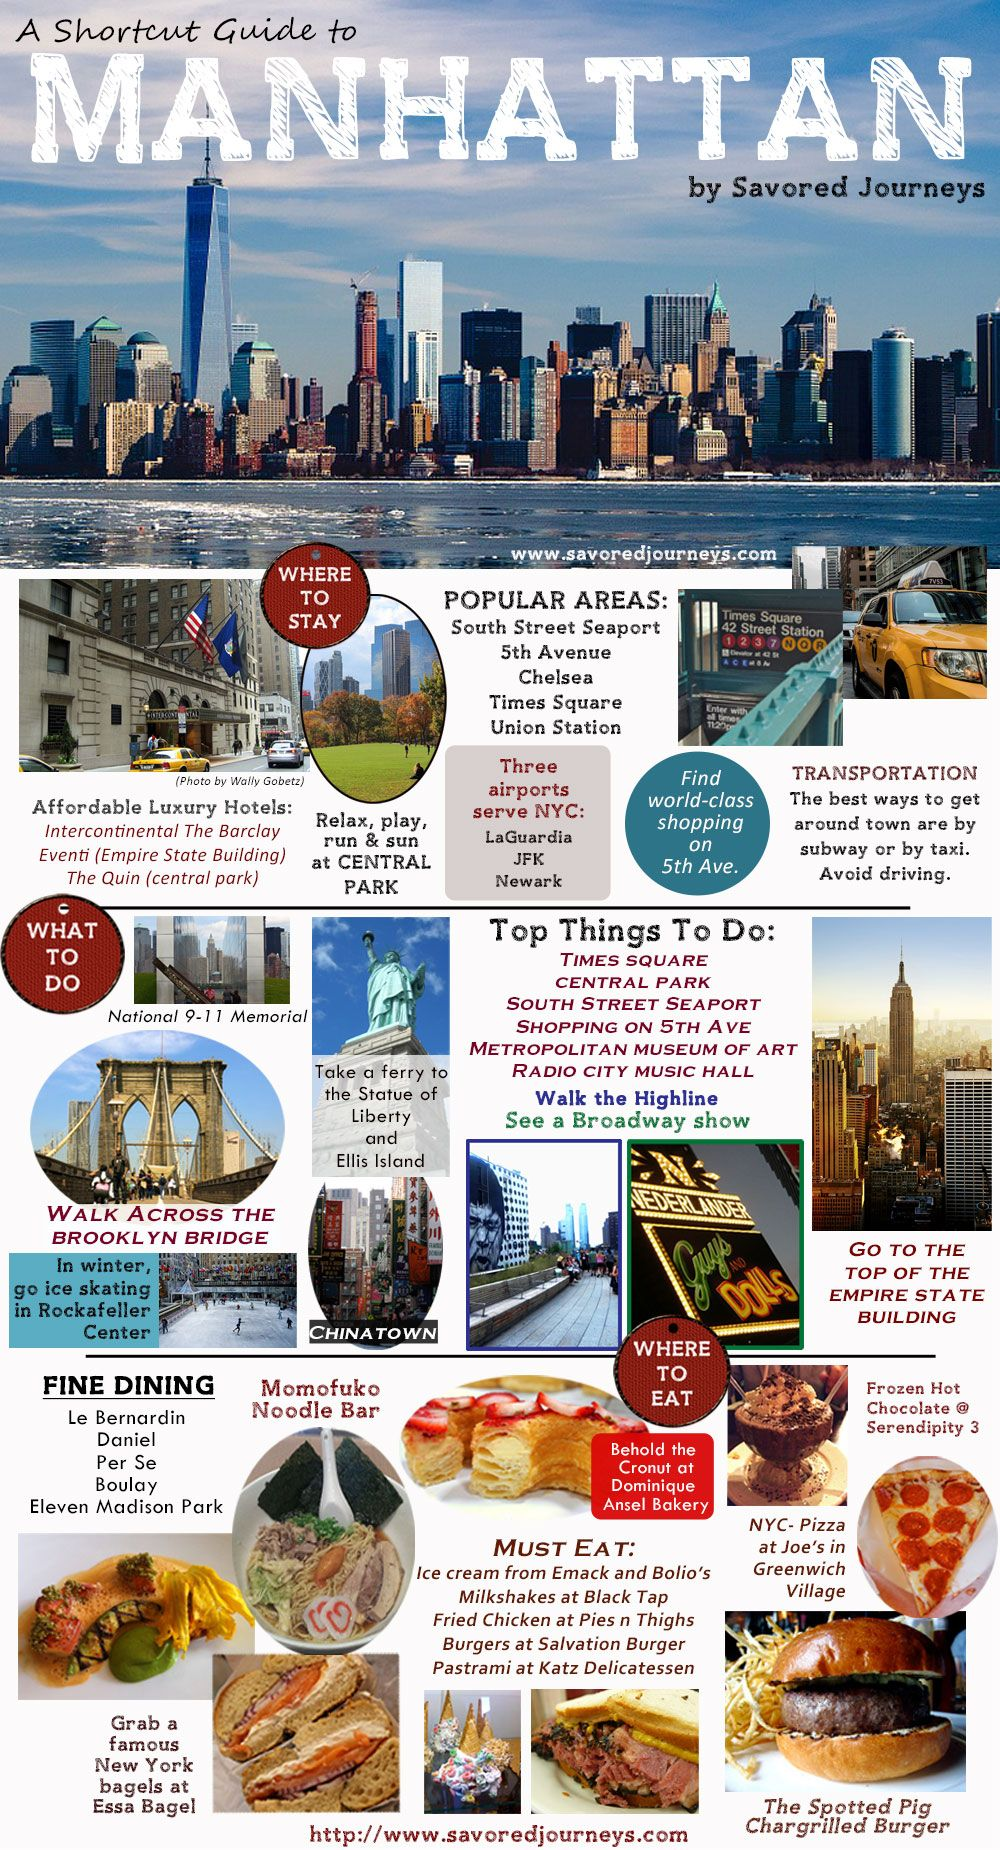 Shortcut travel guide to manhattan nyc savored journeys - Tourist office new york city ...